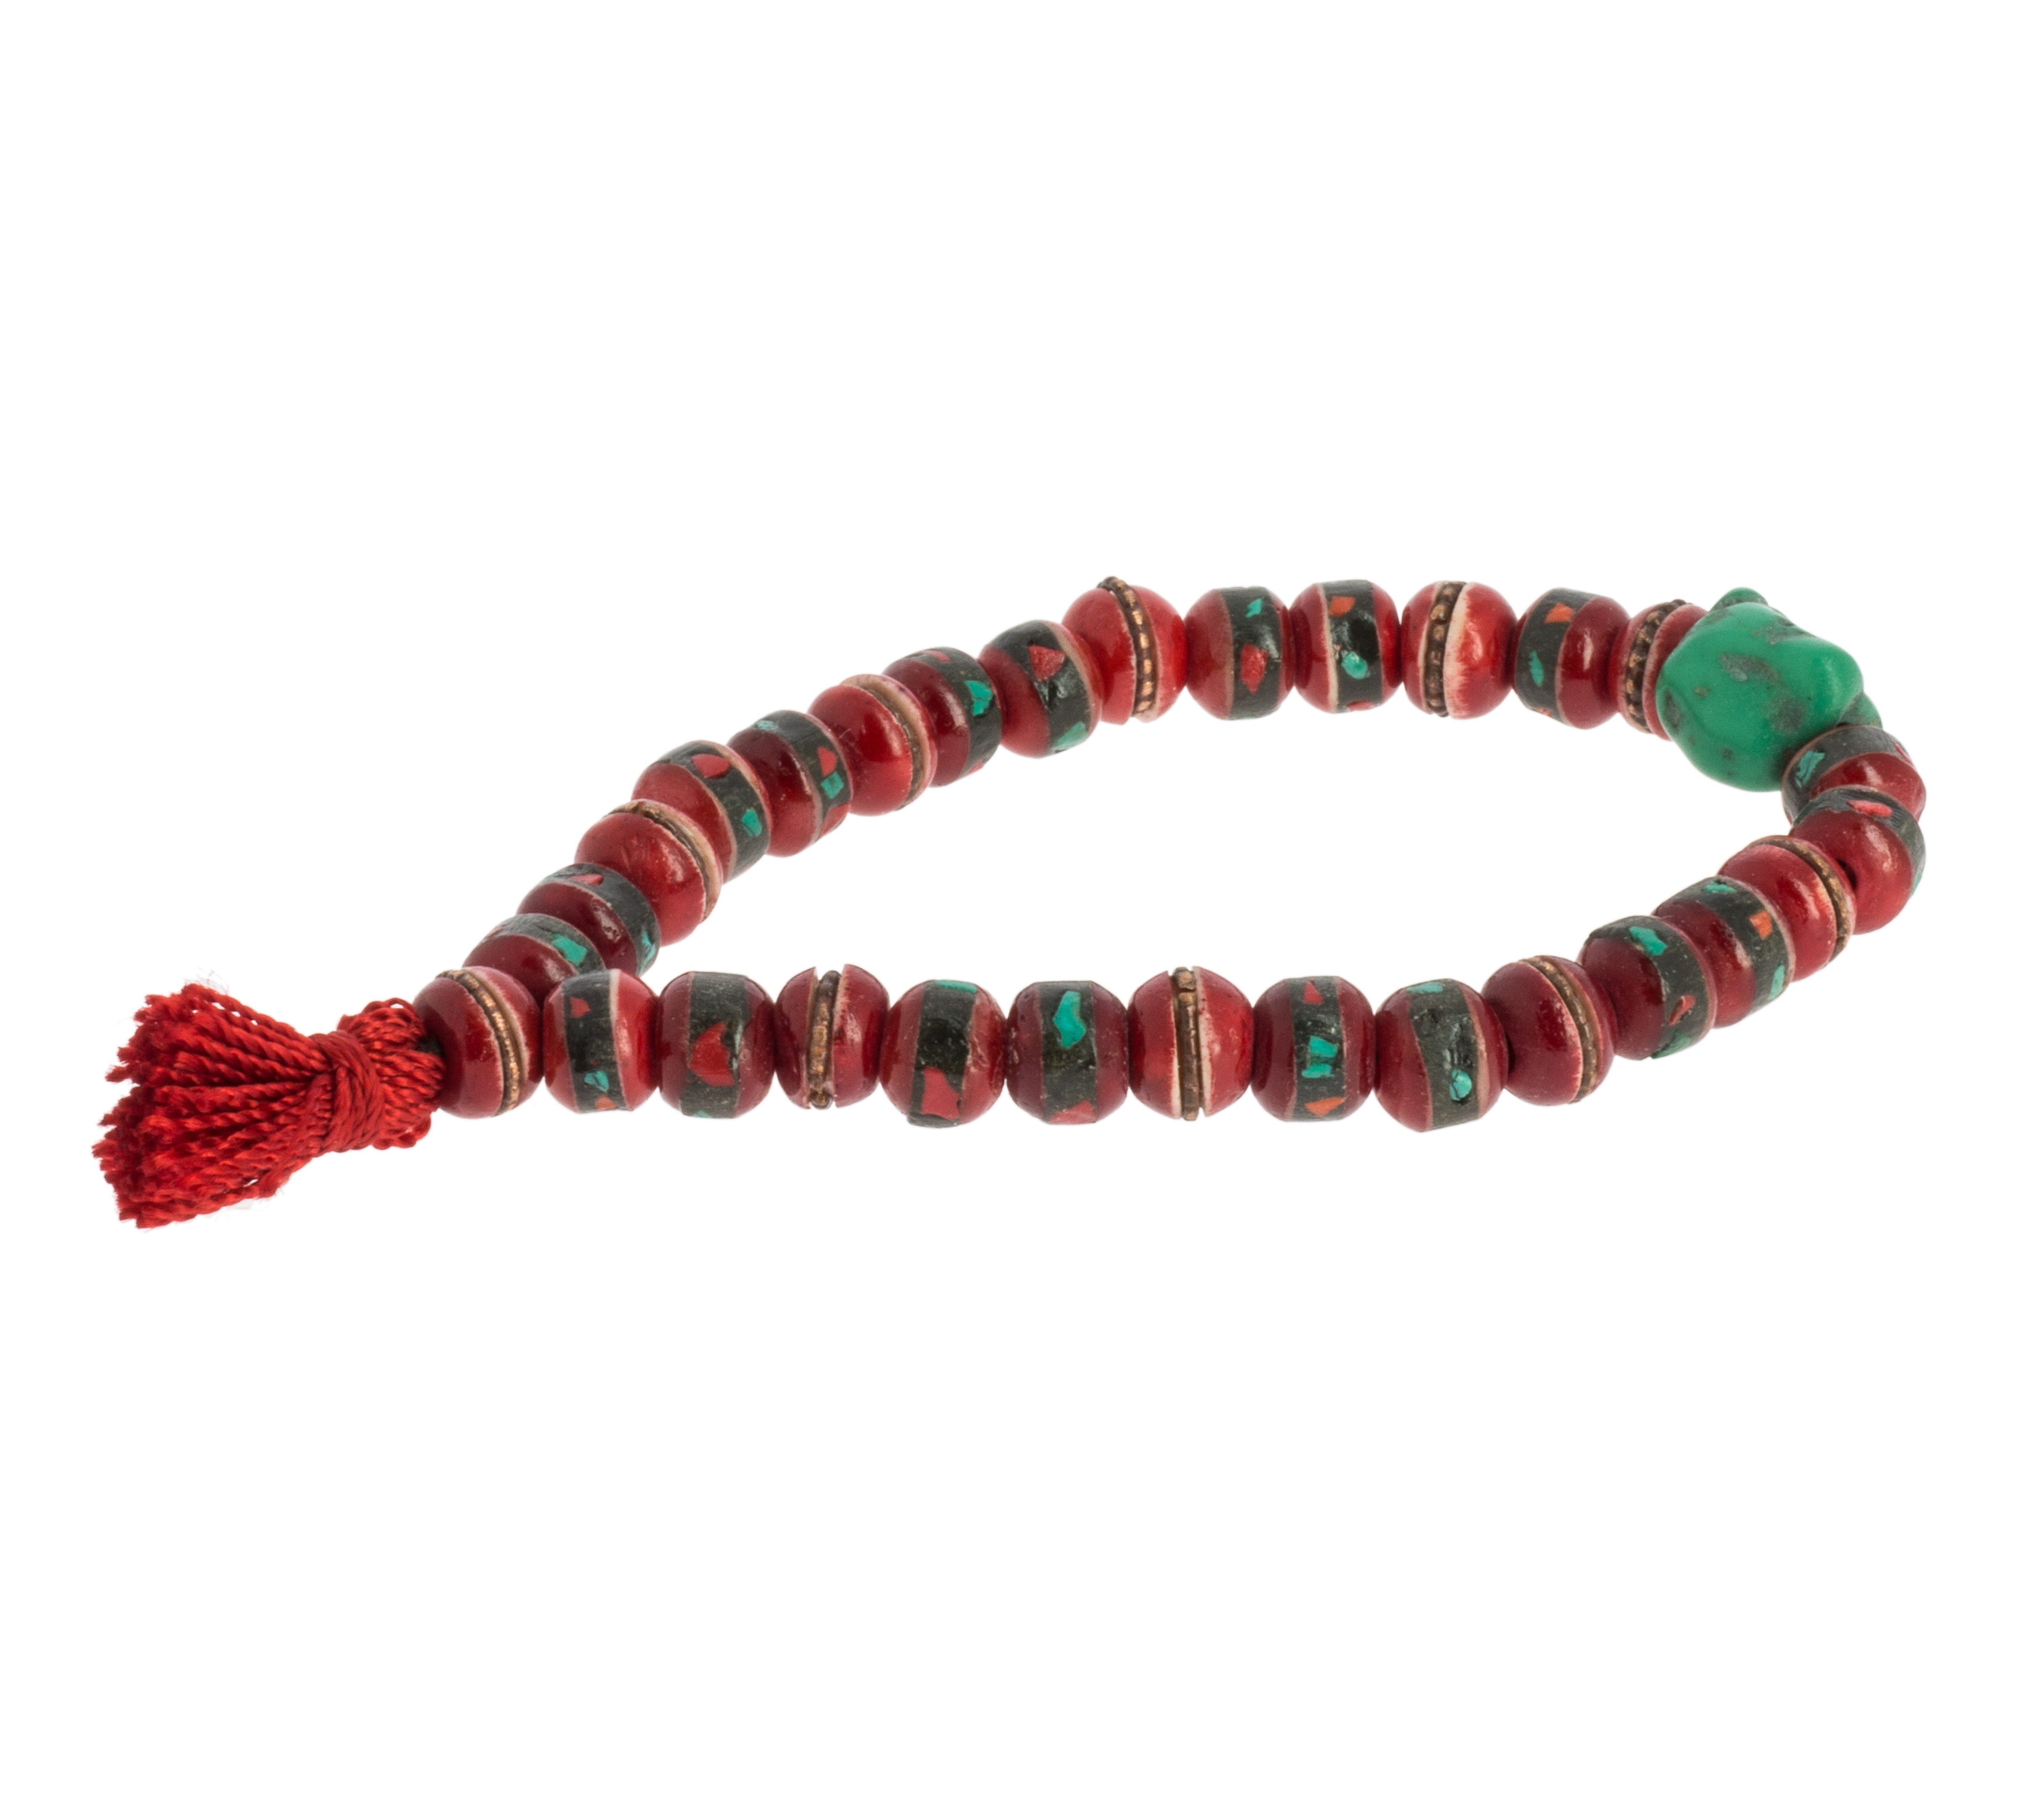 Red Bone Wrist Mala with Inlays